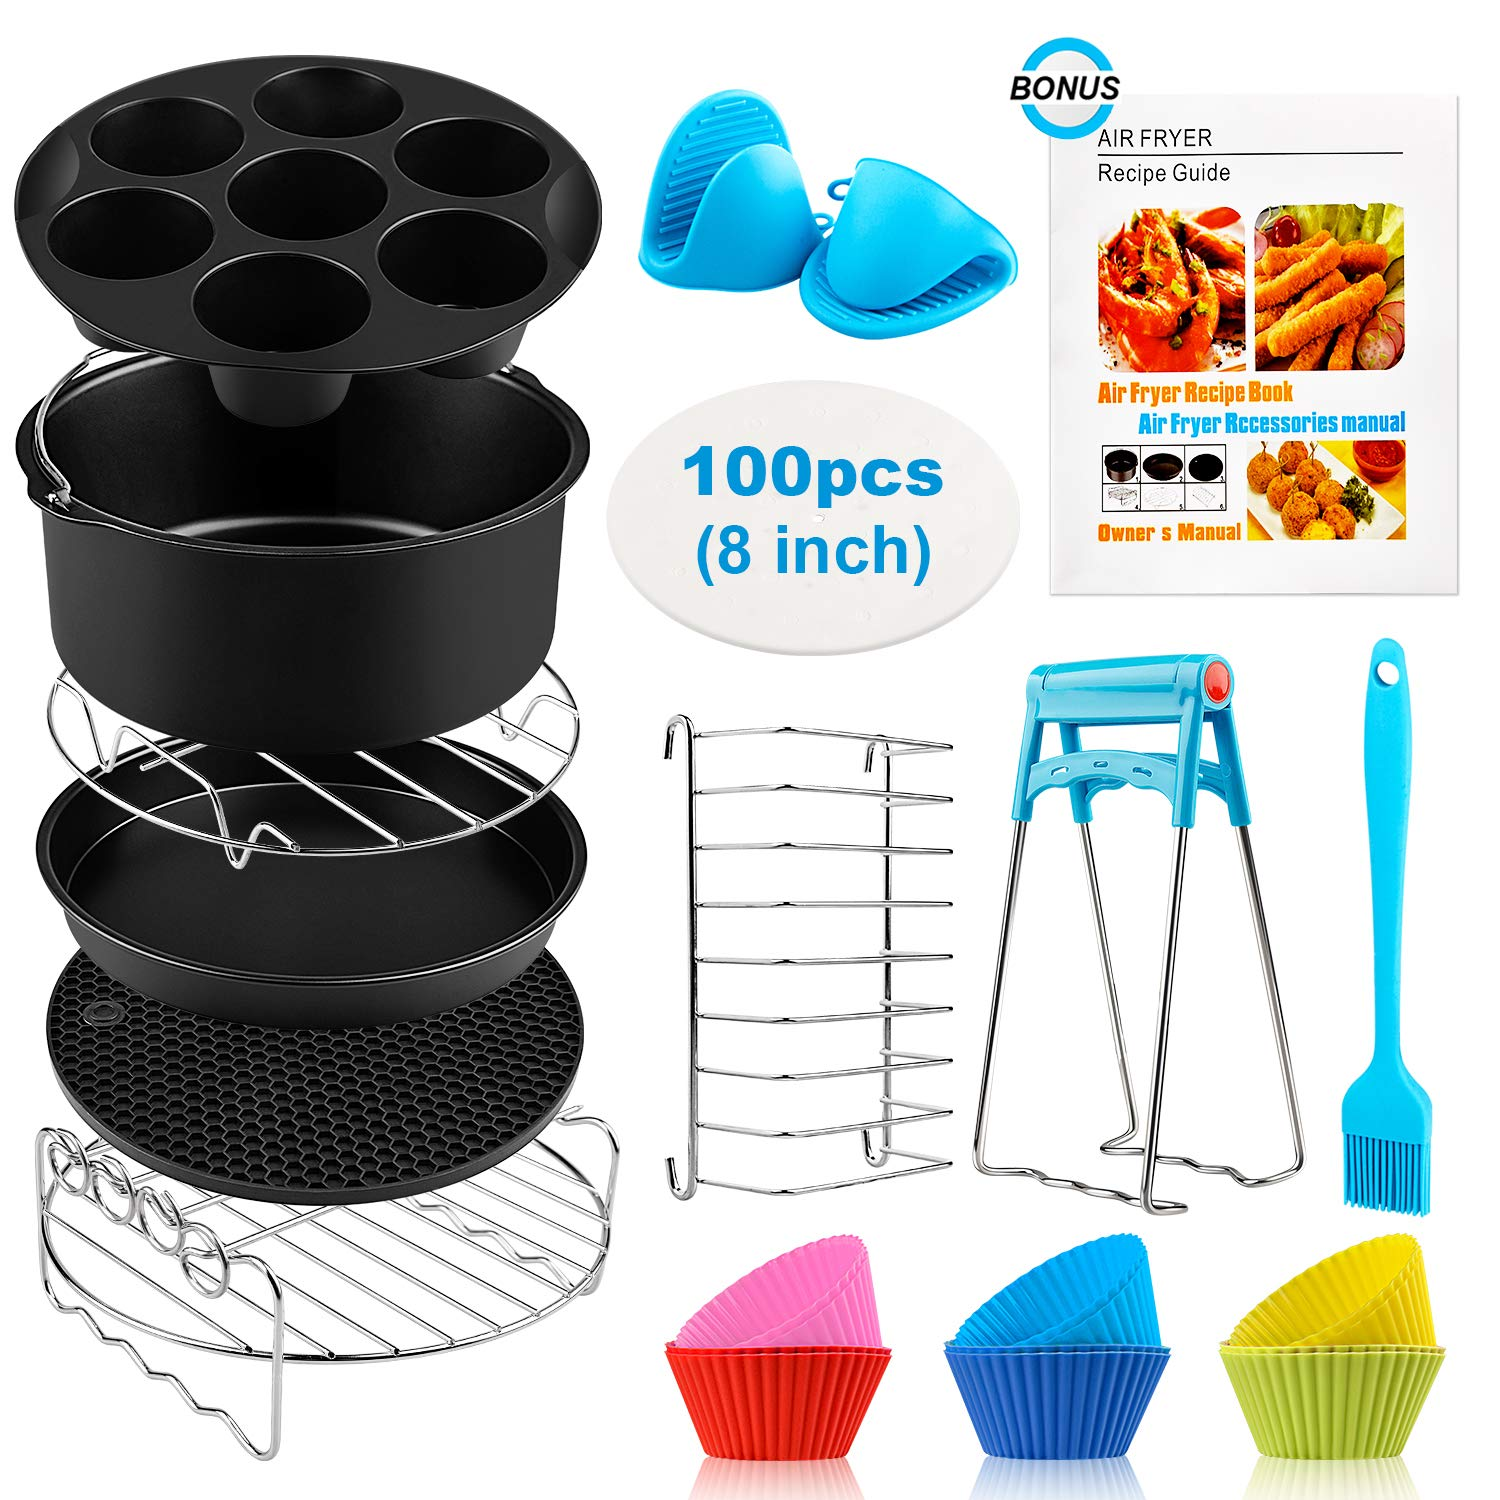 Air Fryer Accessories XL, 8 Inch Set Of 17 For Gowise USA Phillips Ninjia Cosori Cozyna 4.2QT 5.3QT 5.8QT Deep Air Fryer With 3 Magnetic Cheat Sheets And Recipes Cookbook Universal Accessories